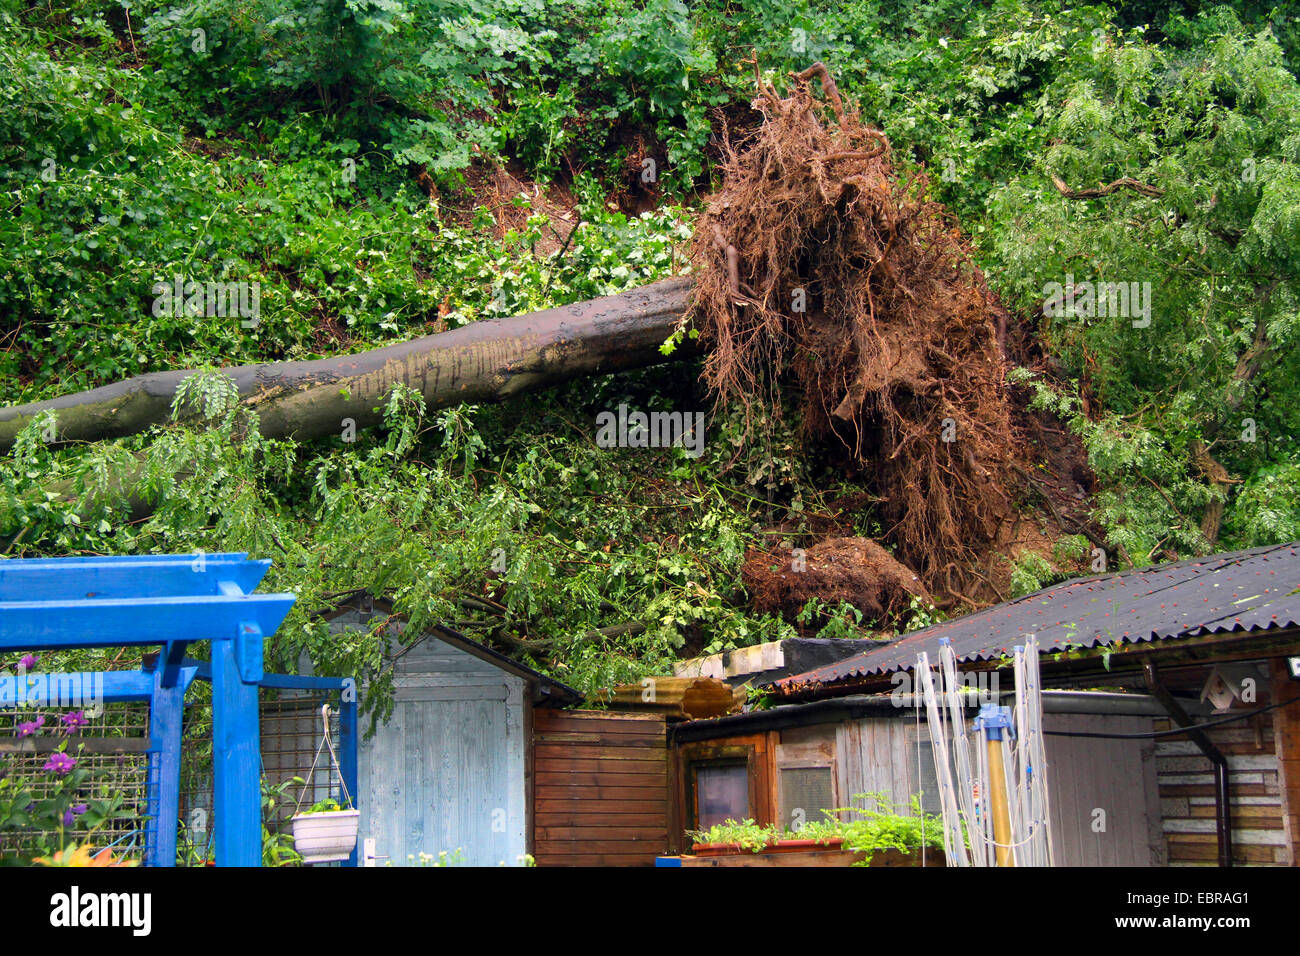 fallen trunk of an sycamore maple demolishing garden huts, storm front Ela at 2014-06-09, Germany, North Rhine-Westphalia, - Stock Image